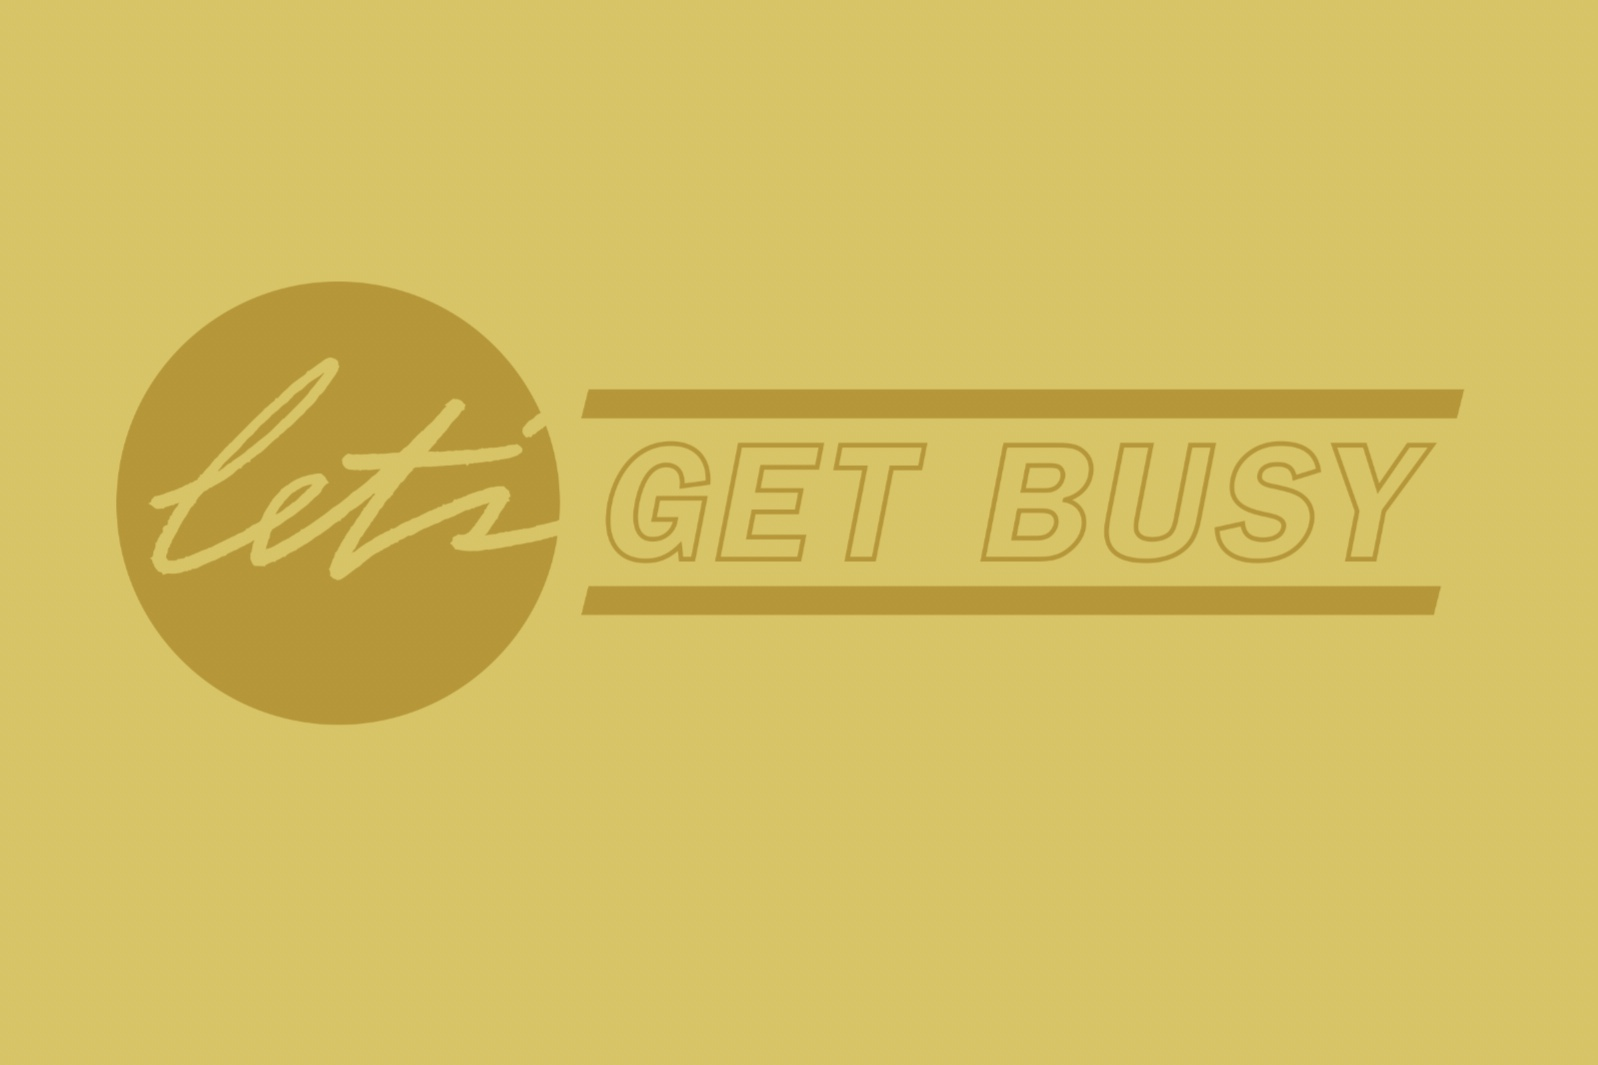 LET'S GET BUSY    Let's Get Busy  is a speed date style event, connecting nonprofits to consultants in branding, graphic design, web design, social and strategy during Design Week Portland. This year's event happens April 8th, 2019.